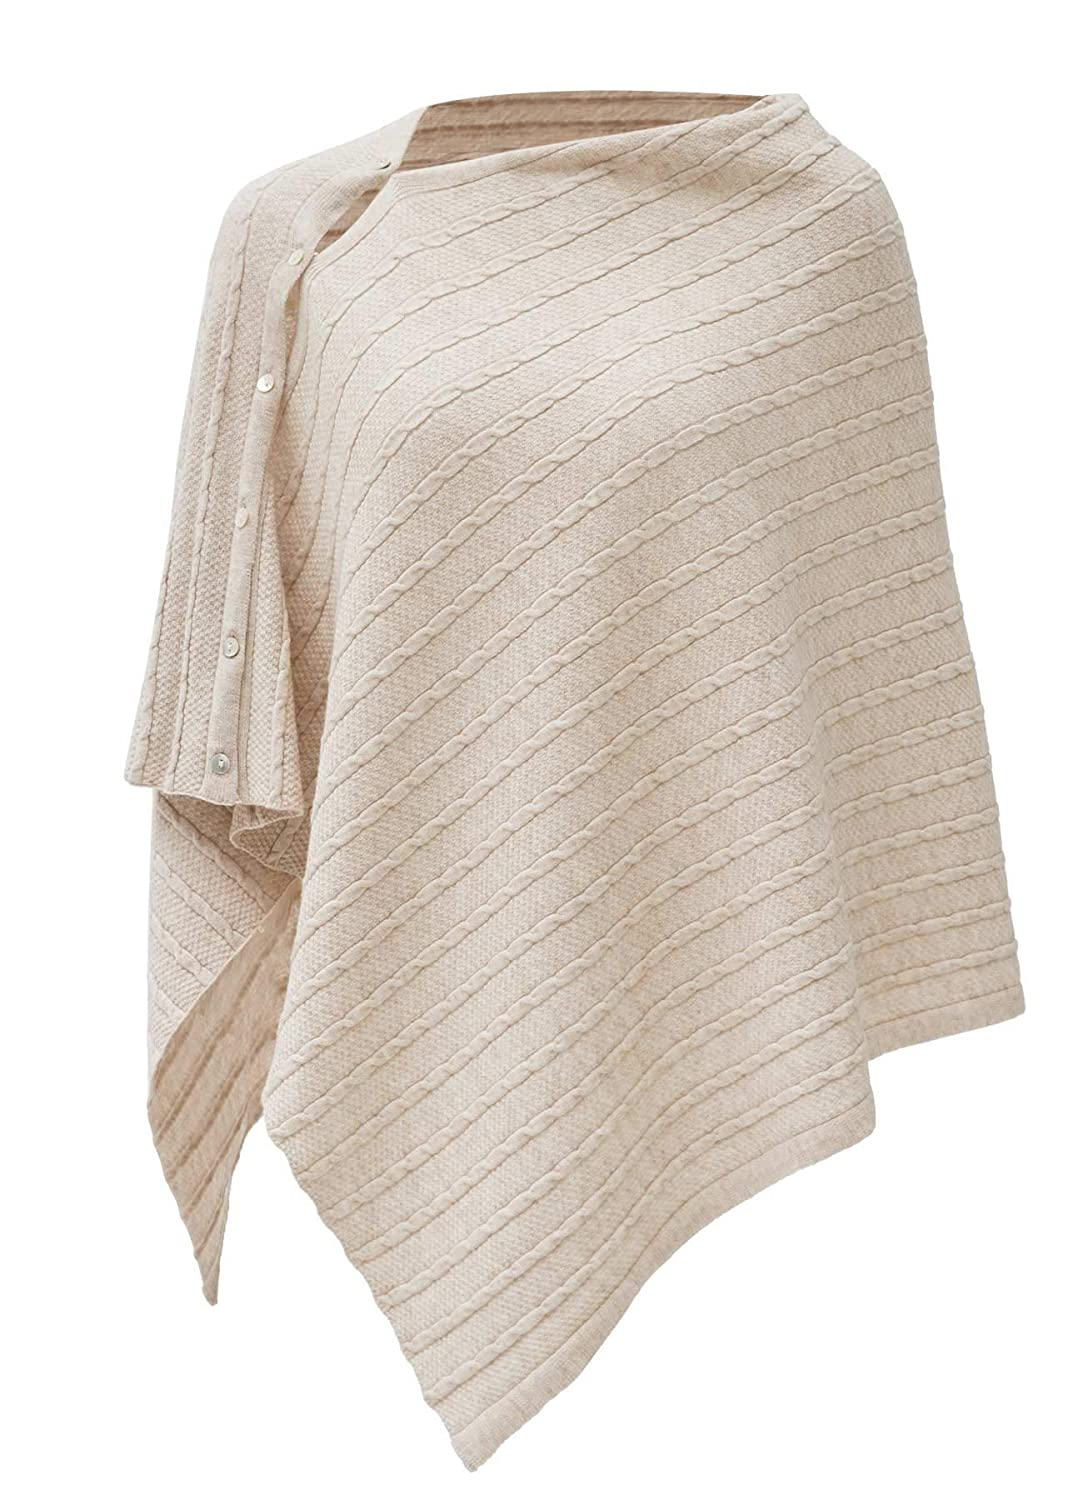 Scarf Womens Cable Pattern Lightweight Kintted Poncho Sweater with Shell Button